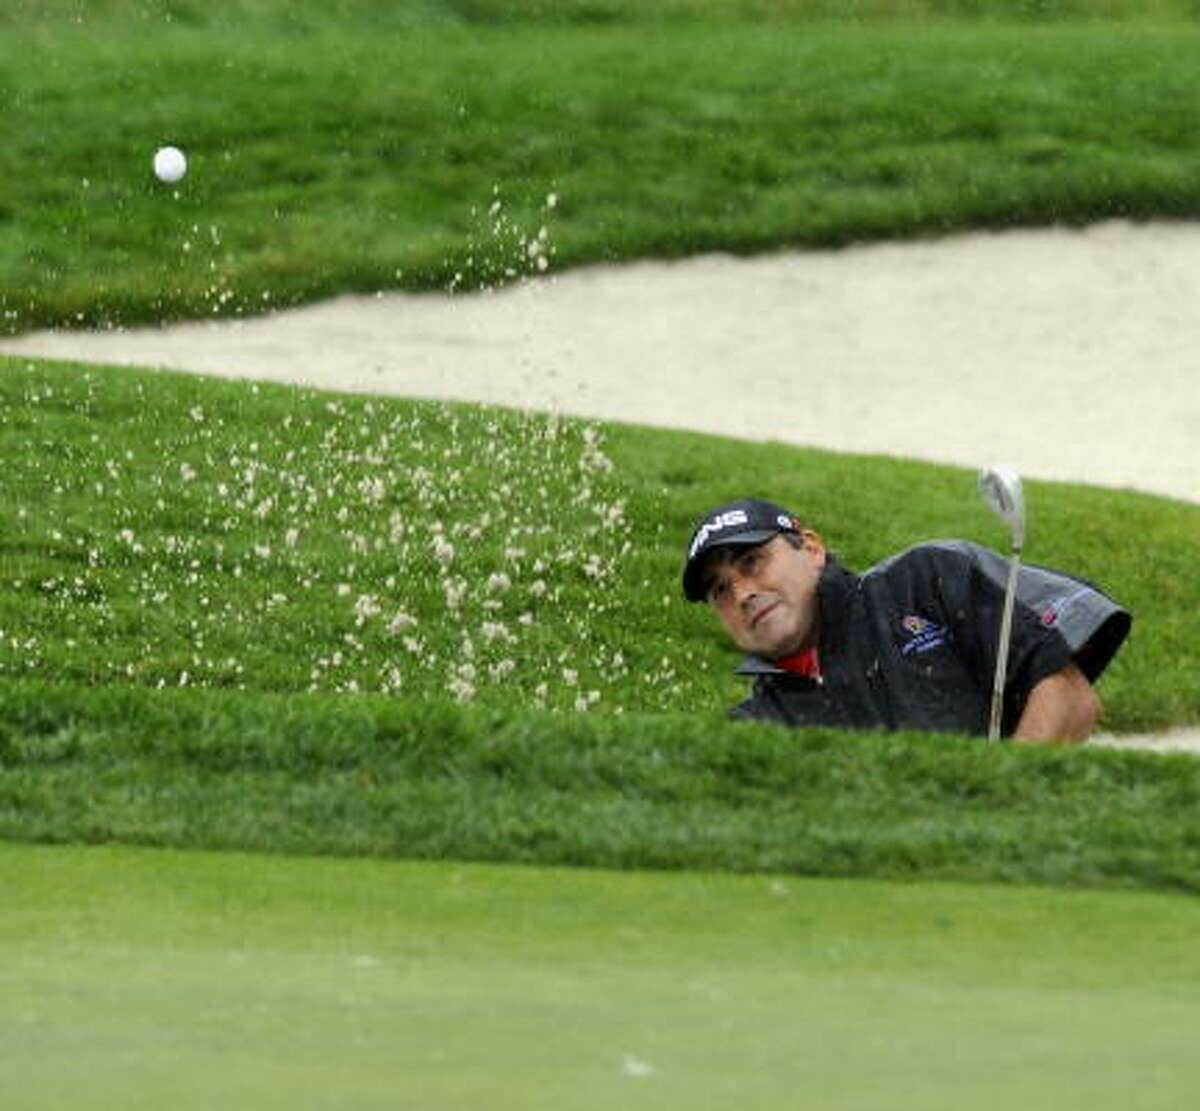 Angel Cabrera of Argentina, the 2009 Masters champion, plays from the sand during the first round.